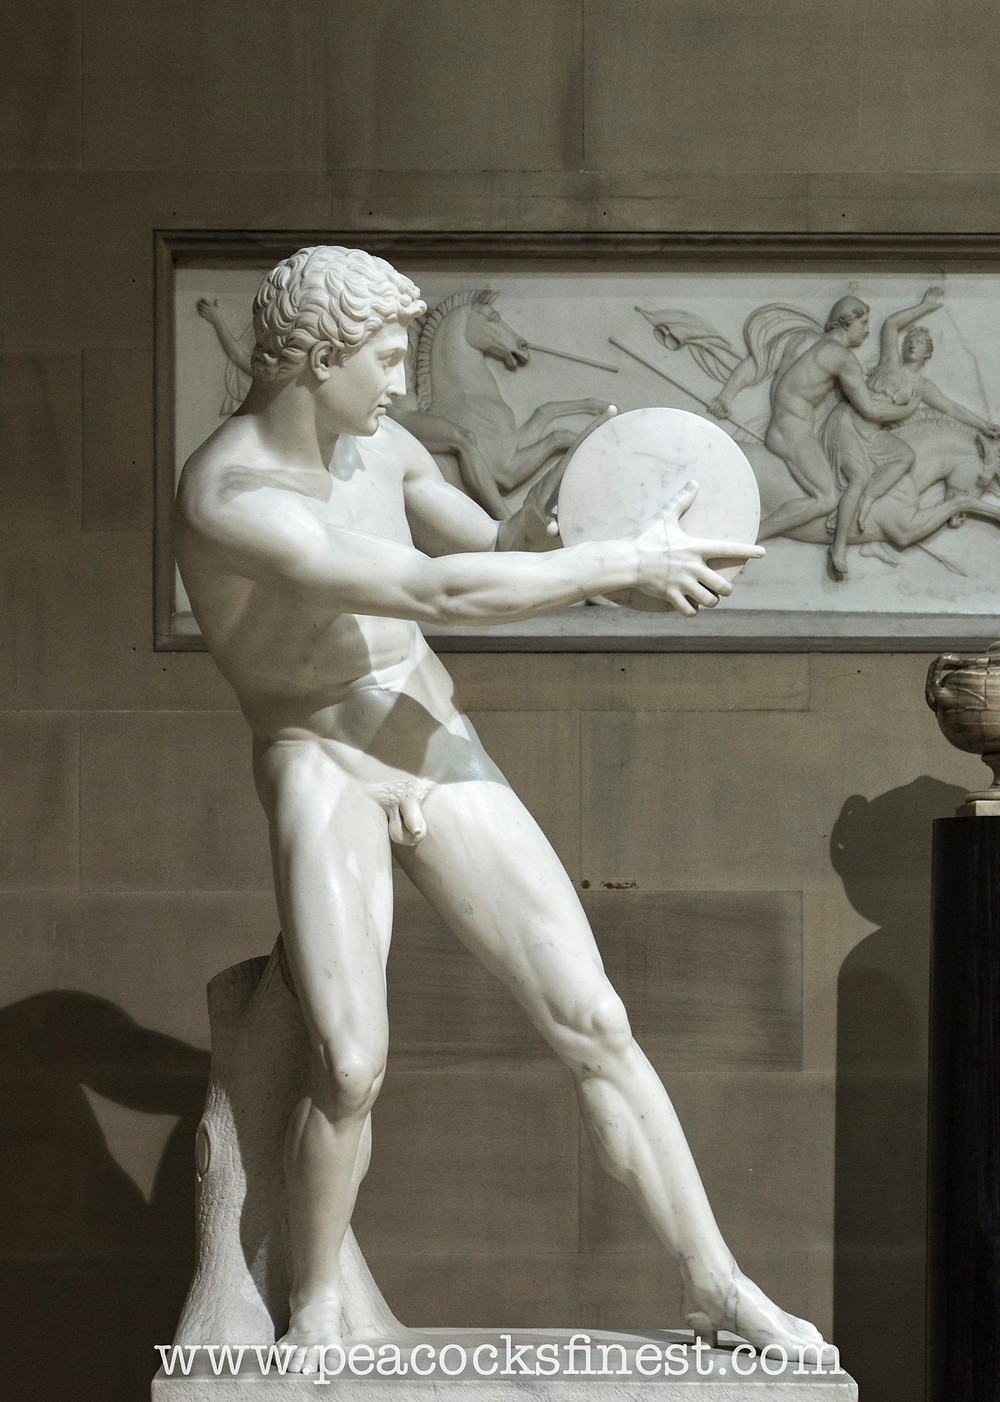 Chatsworth House, the Scultpure Gallery. Diskobolos preparing to throw, by Mathieu Kessels.